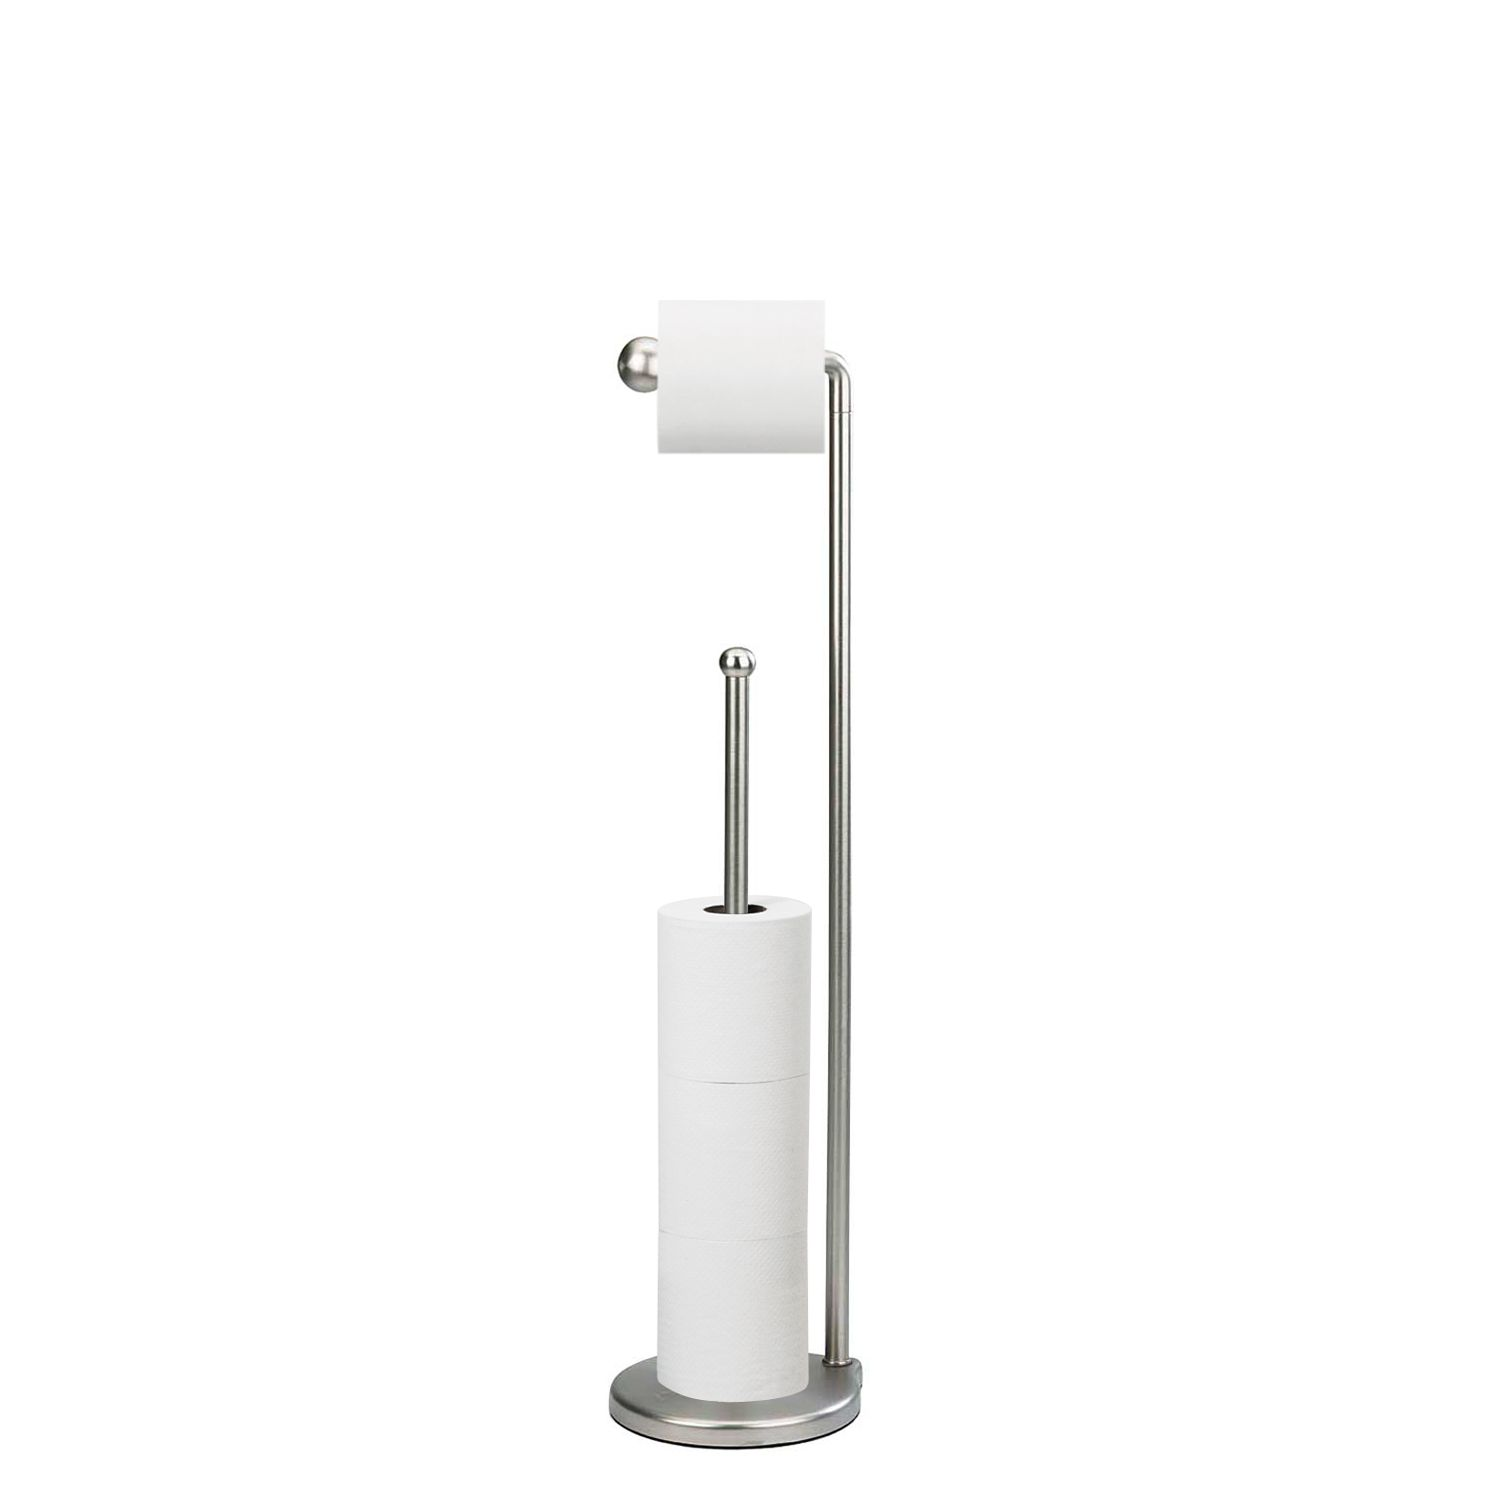 Umbra Teardrop Toilet Paper Holder